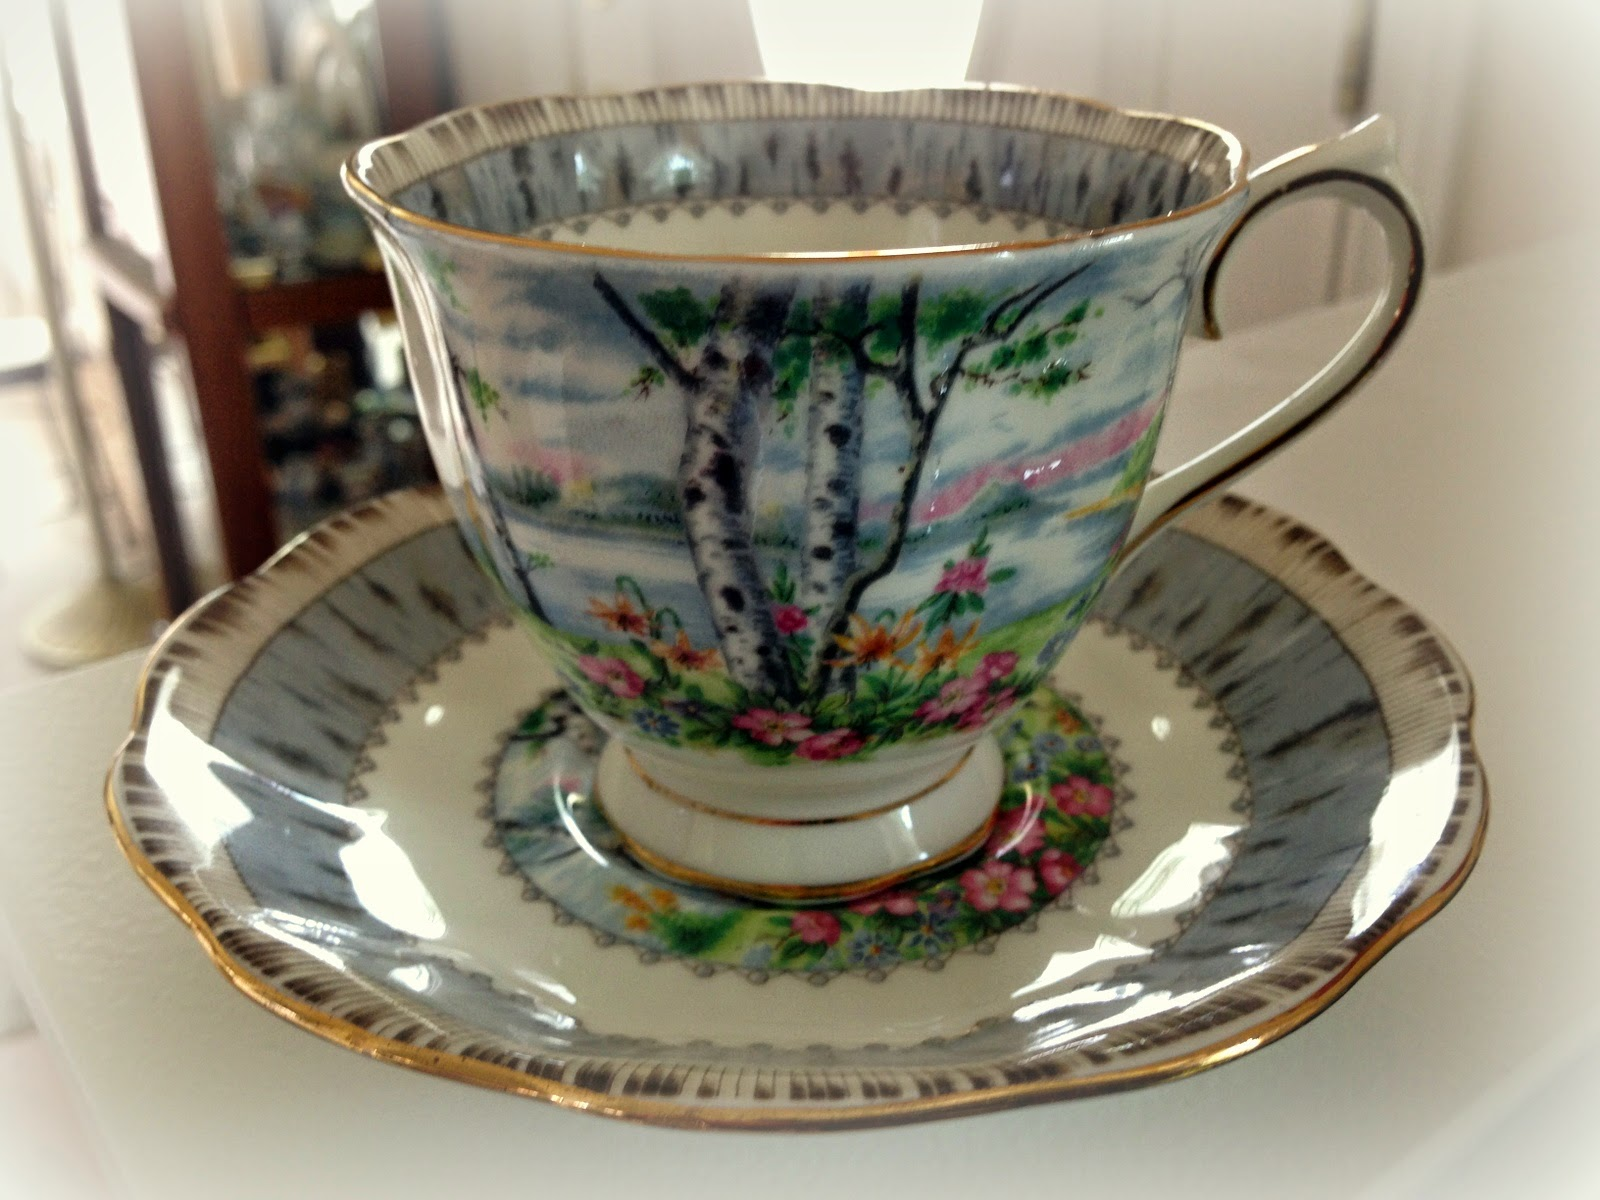 Ruffled Birches Teacup